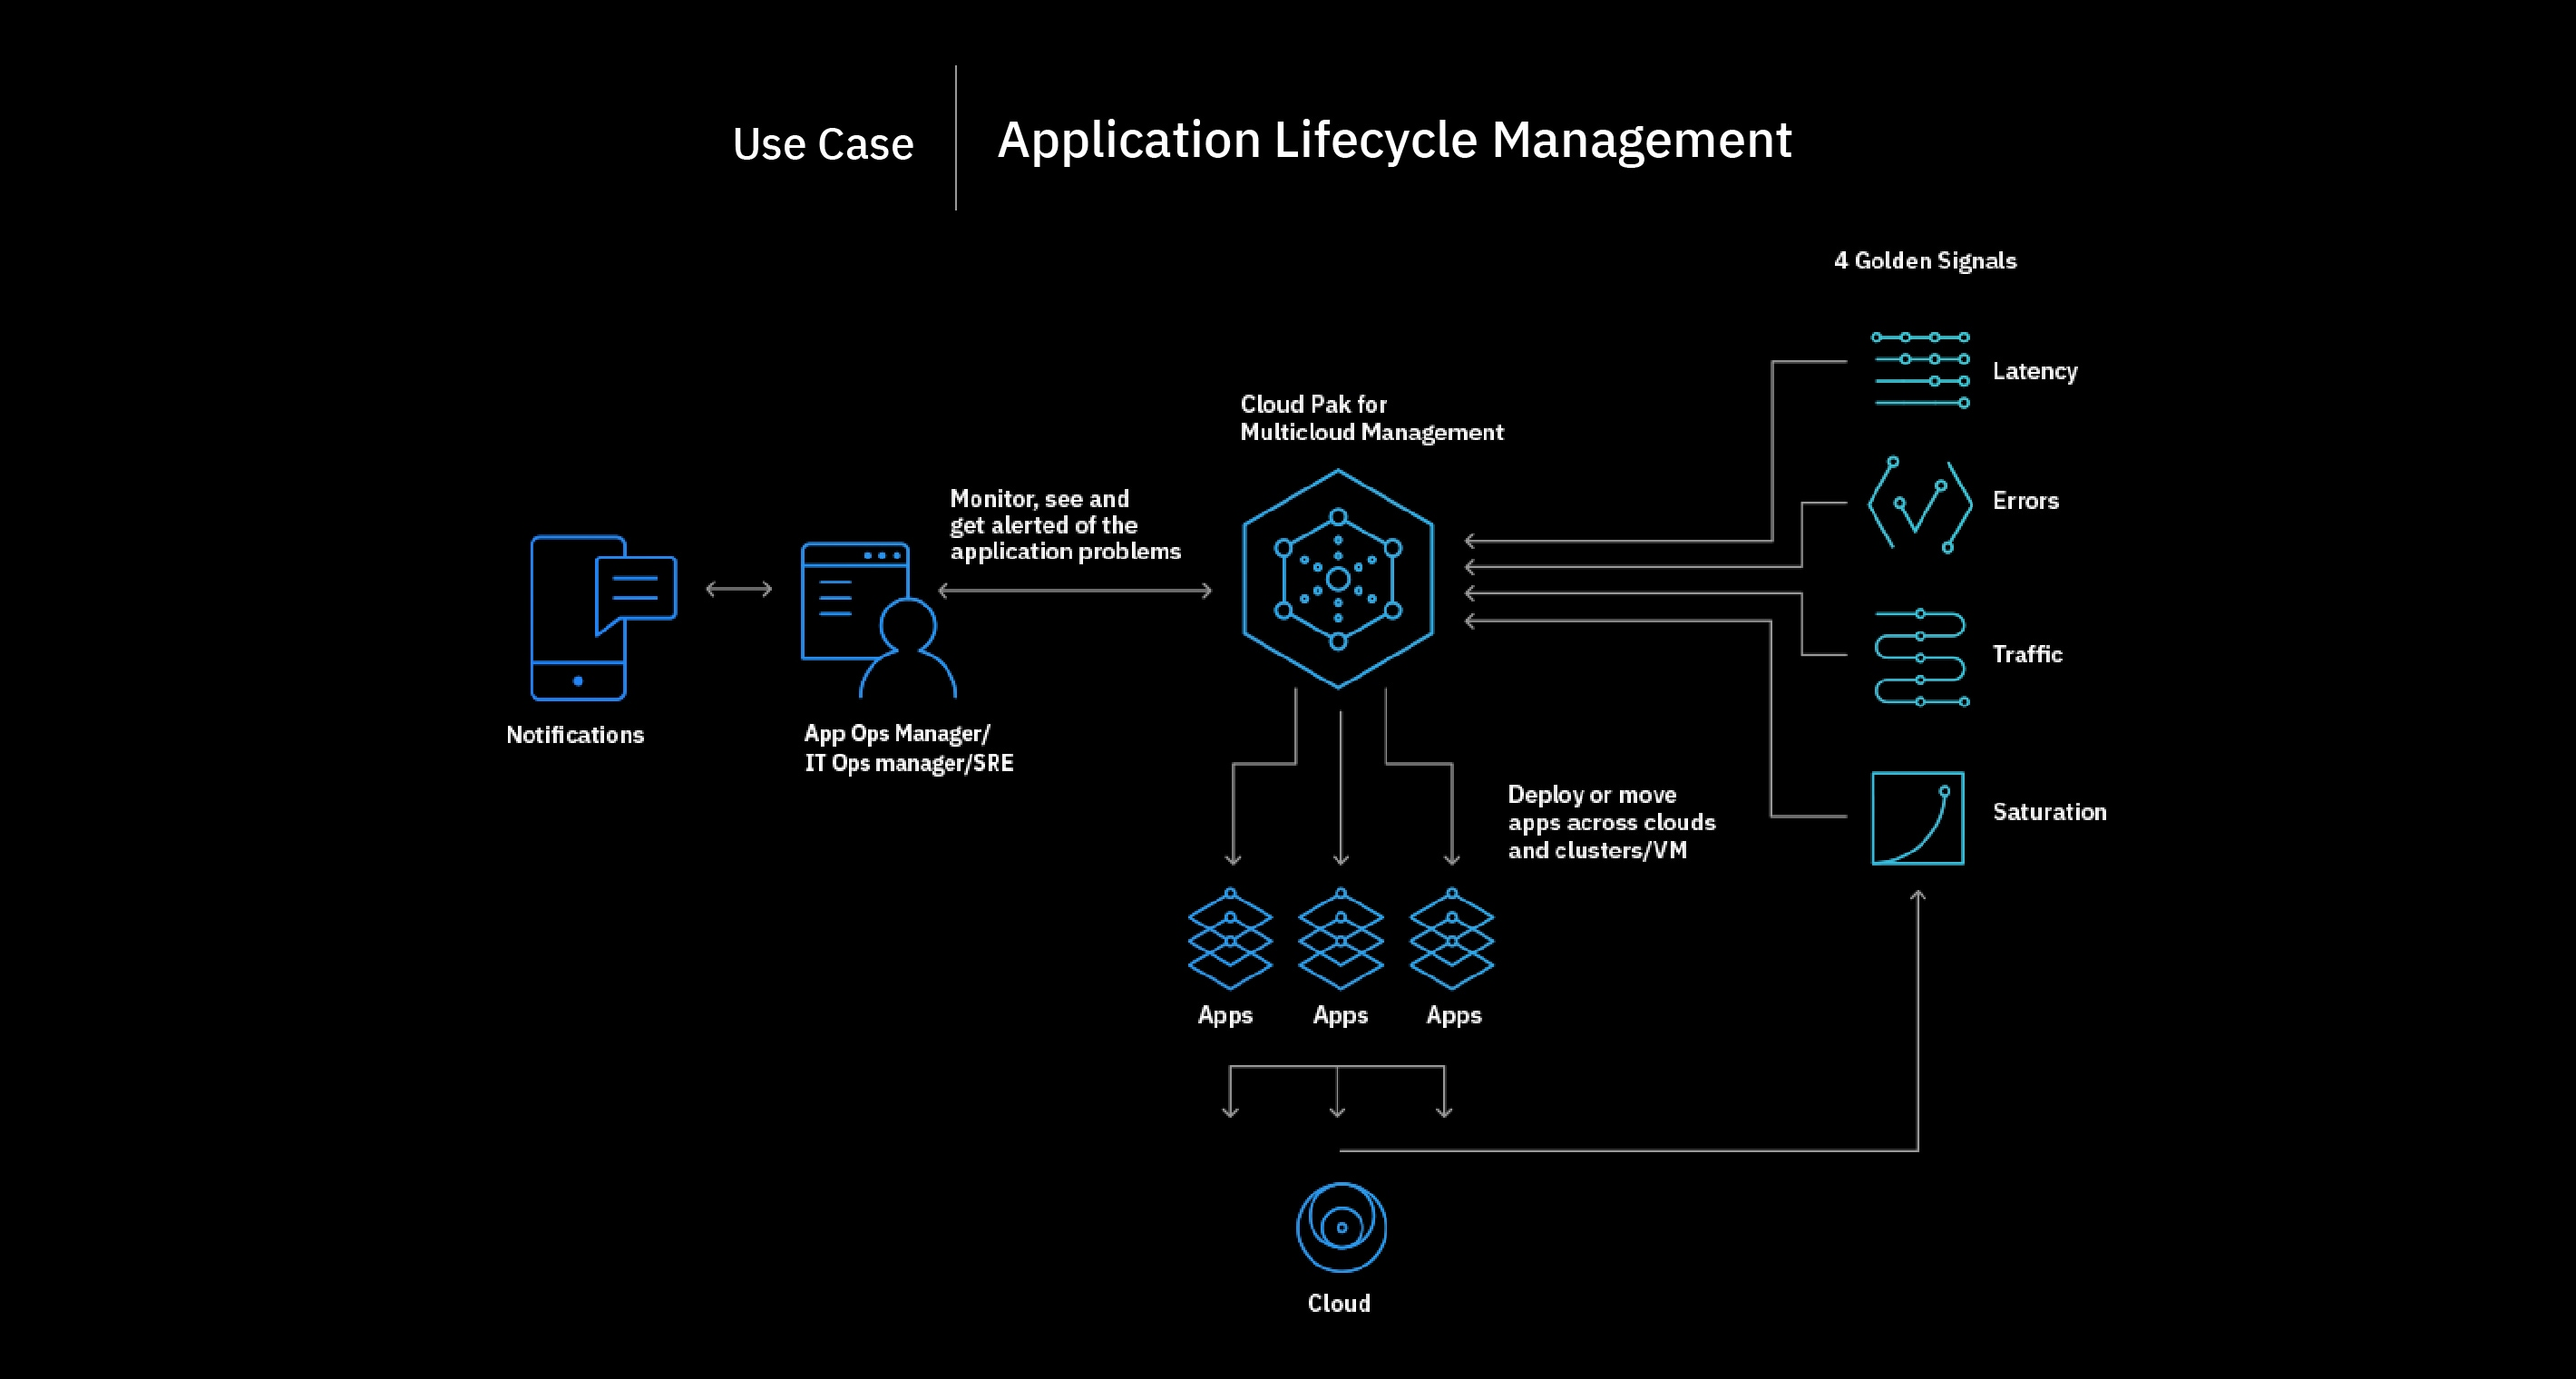 Flowchart showing the application lifecycle management process